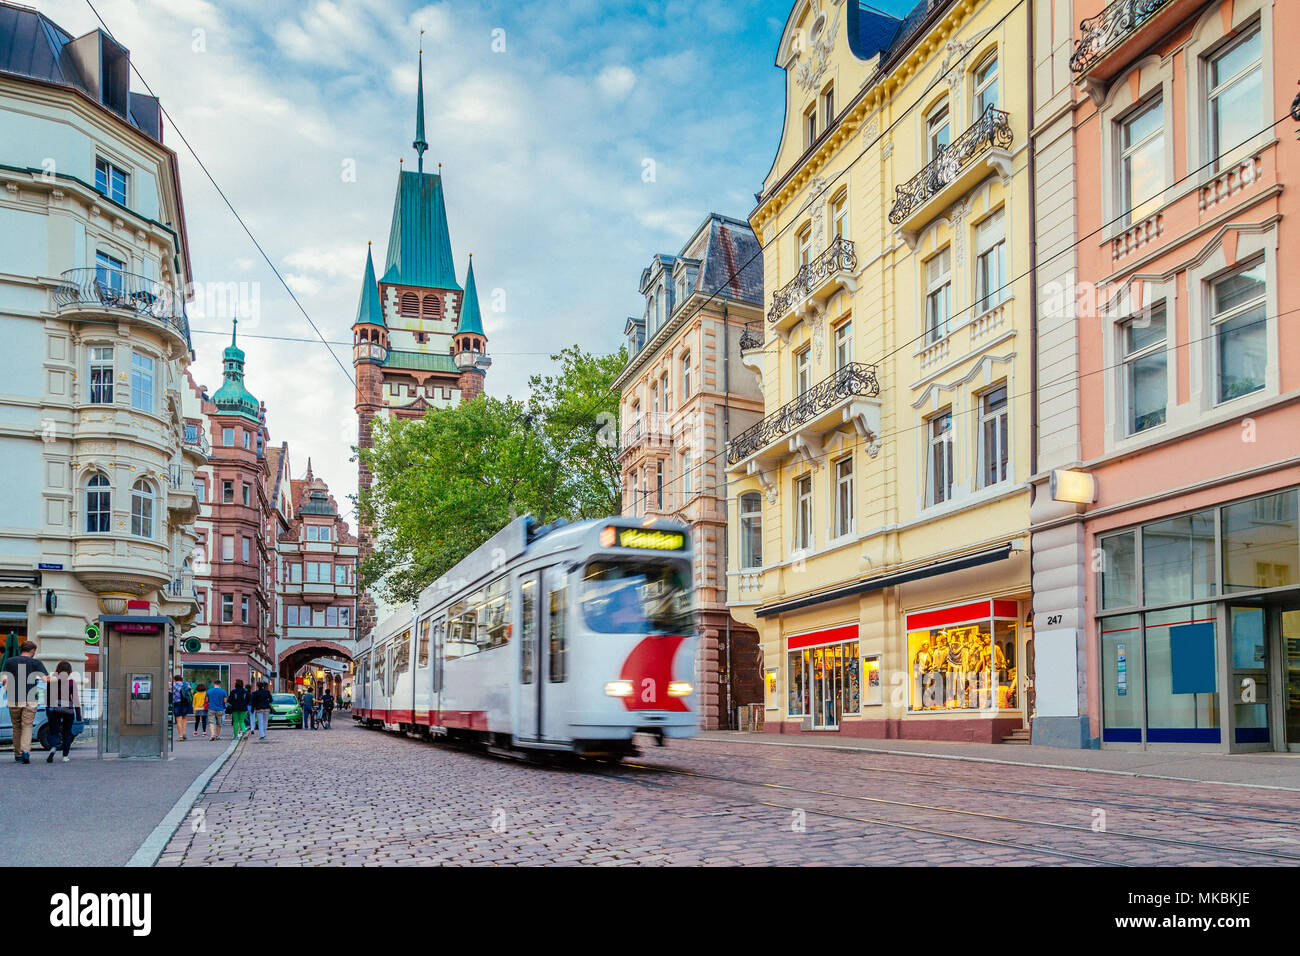 Historic town of Freiburg im Breisgau with famous Freiburg Minster cathedral in beautiful morning light, state of Baden-Wurttemberg, southwest Germany - Stock Image